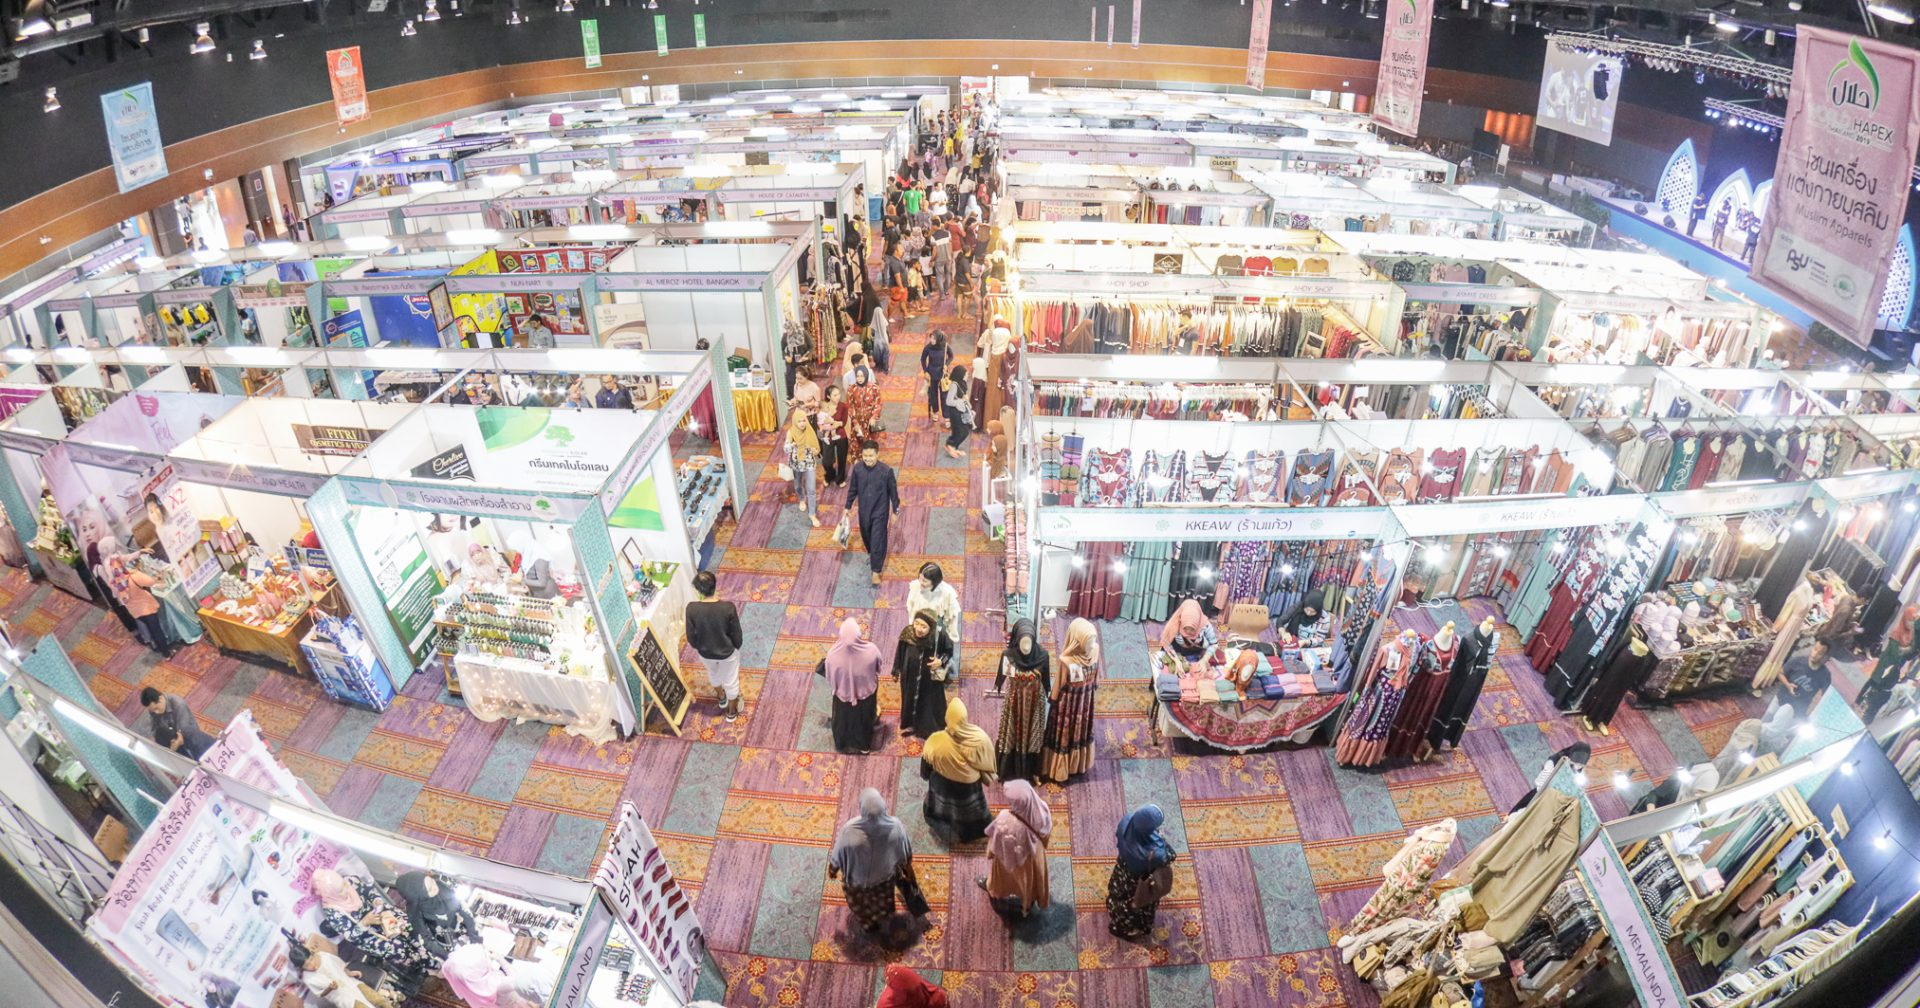 World Halal Products Exhibition & Conference 2021